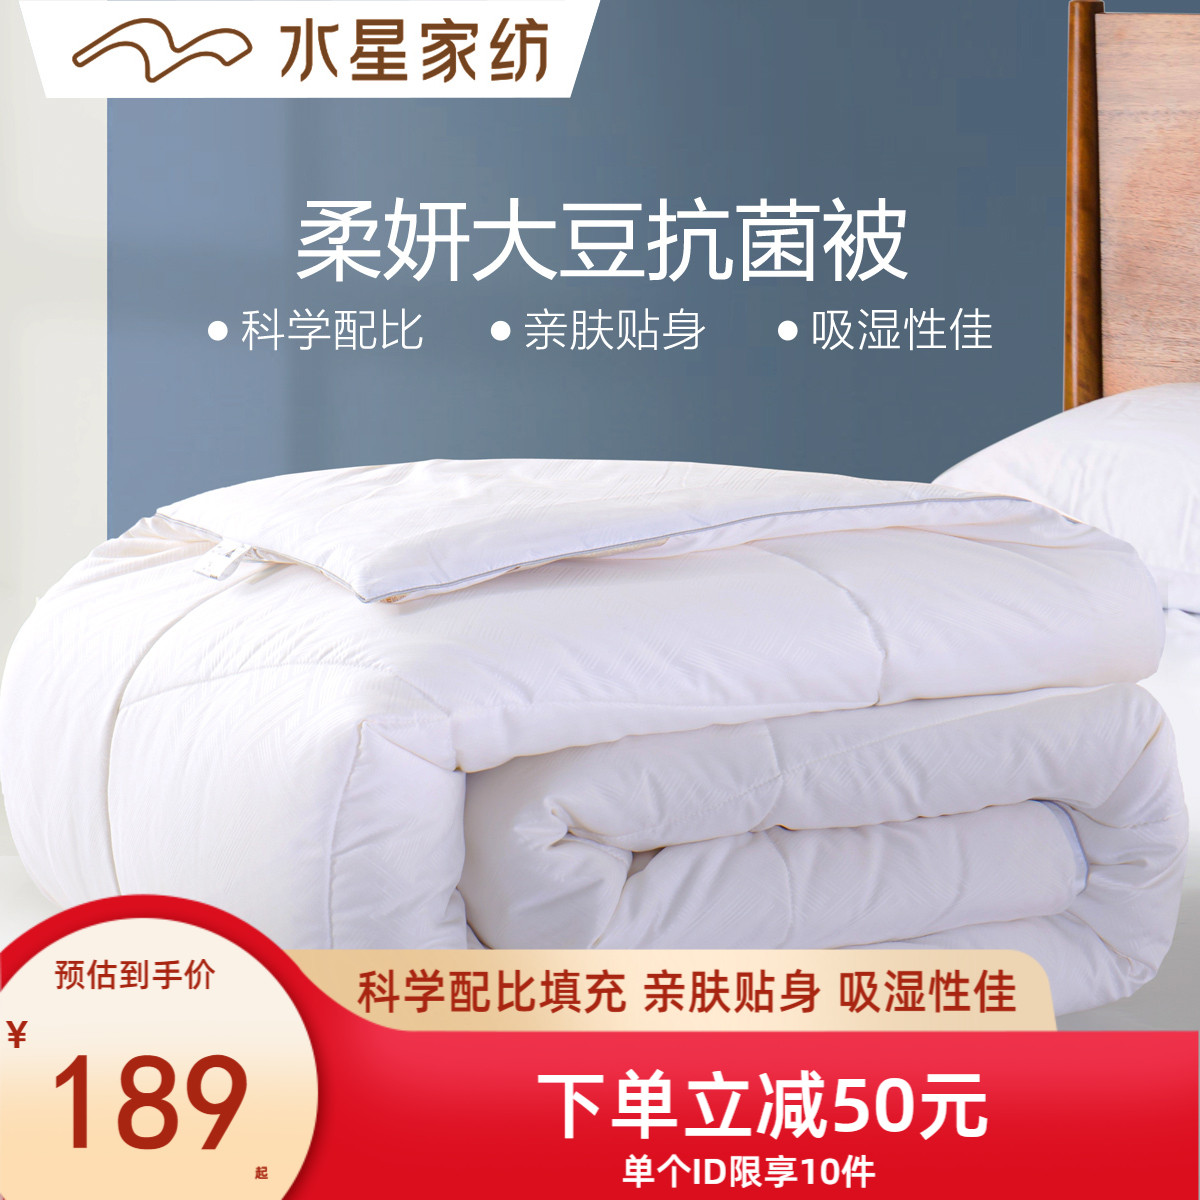 Mercury home textile soybeans are antibacterial spring and autumn quilt thickened winter quilt double soybean fiber summer quilt four seasons